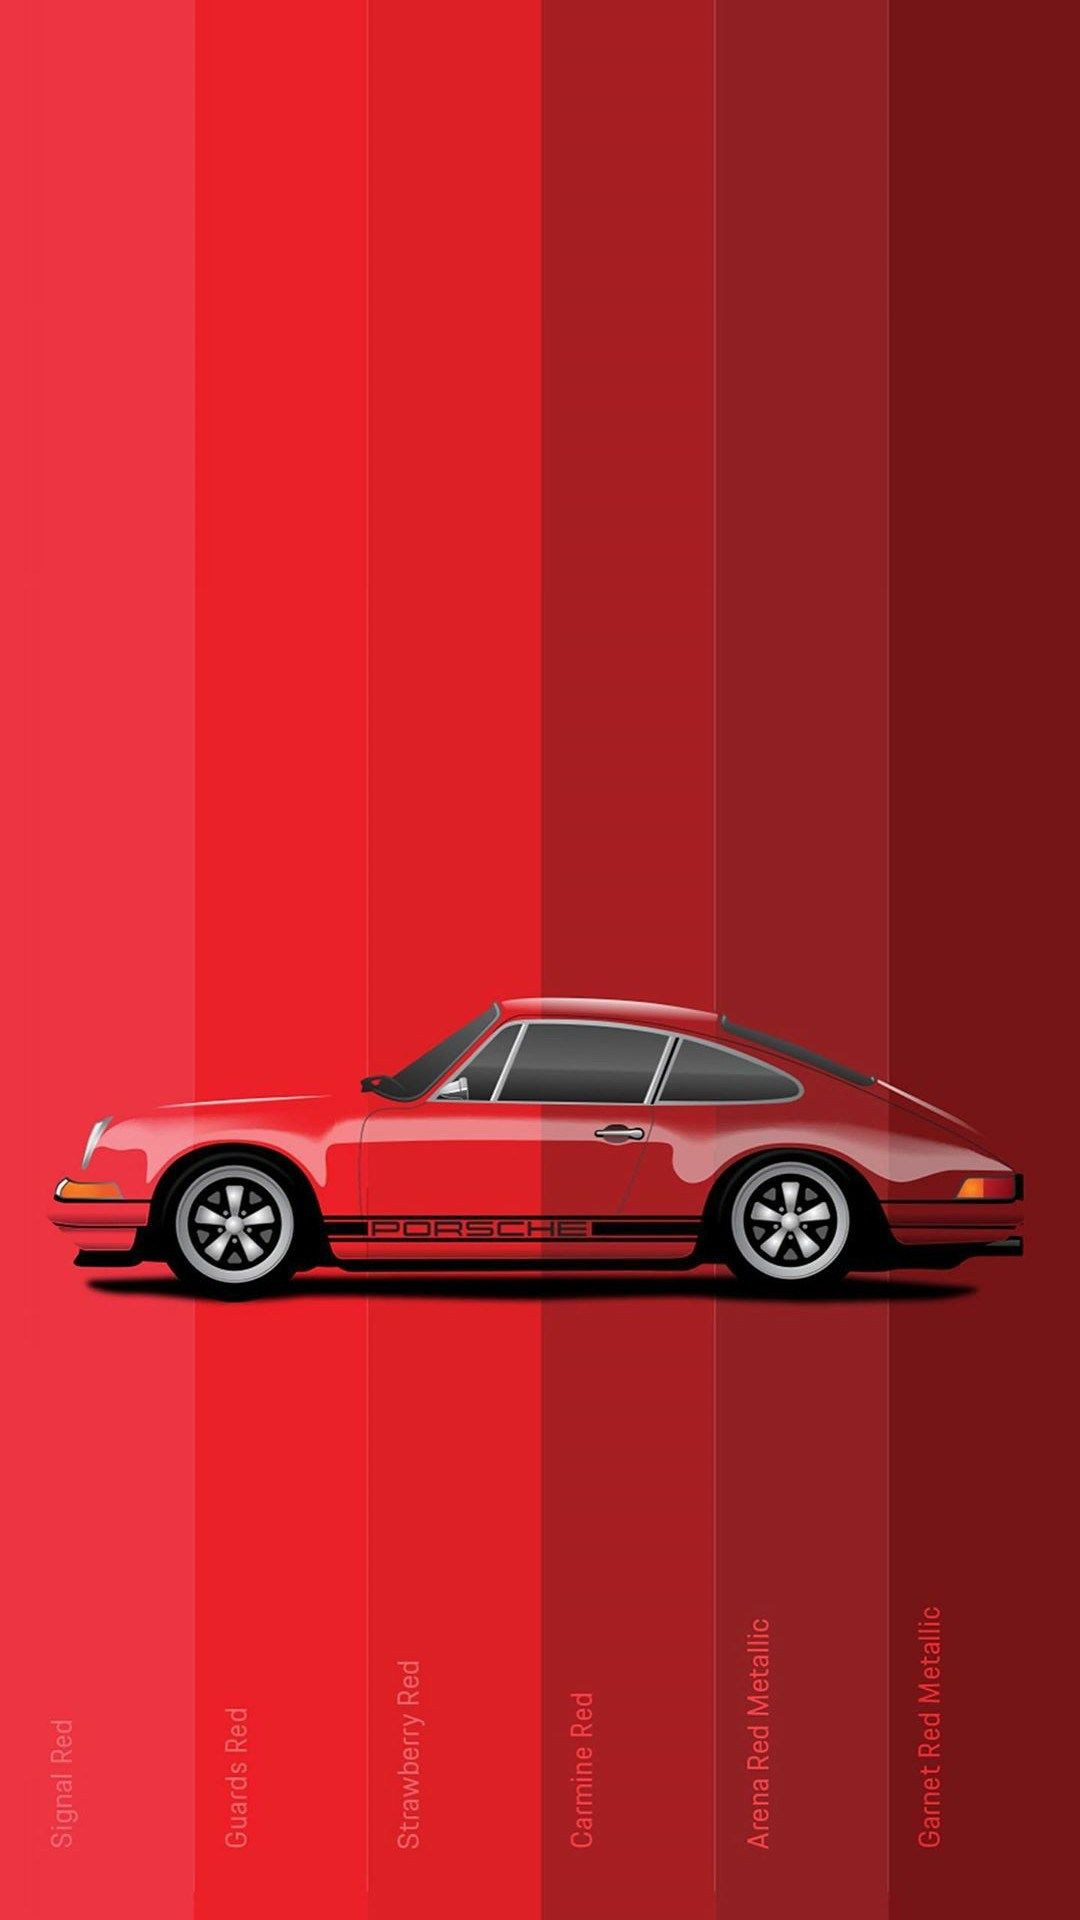 High Resolution Ultra Hd 4k Minimal Mobile Wallpapers Download Red Porsche Car Wallpapers Car Iphone Wallpaper